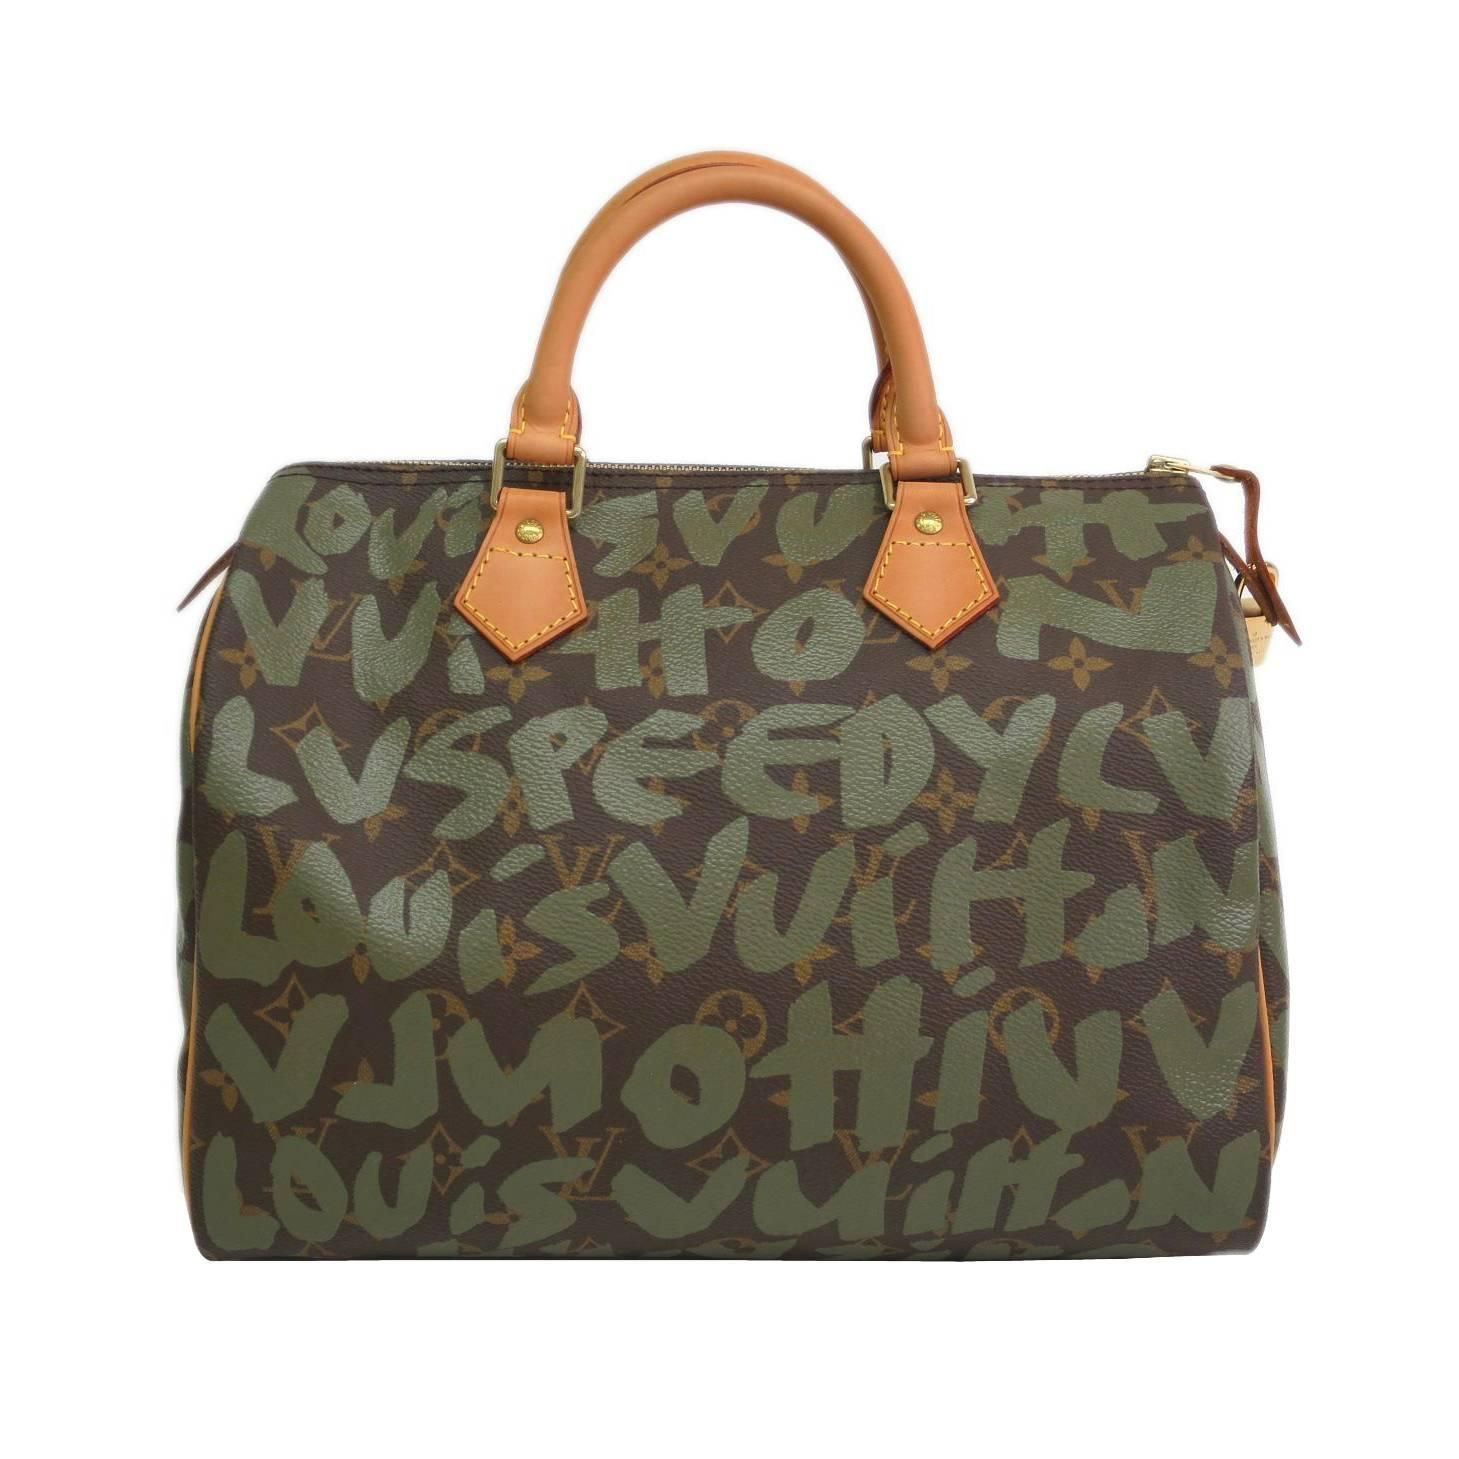 ba5be91d55be Louis Vuitton Limited Edition Stephen Sprouse Green Graffiti Speedy 30  Satchel